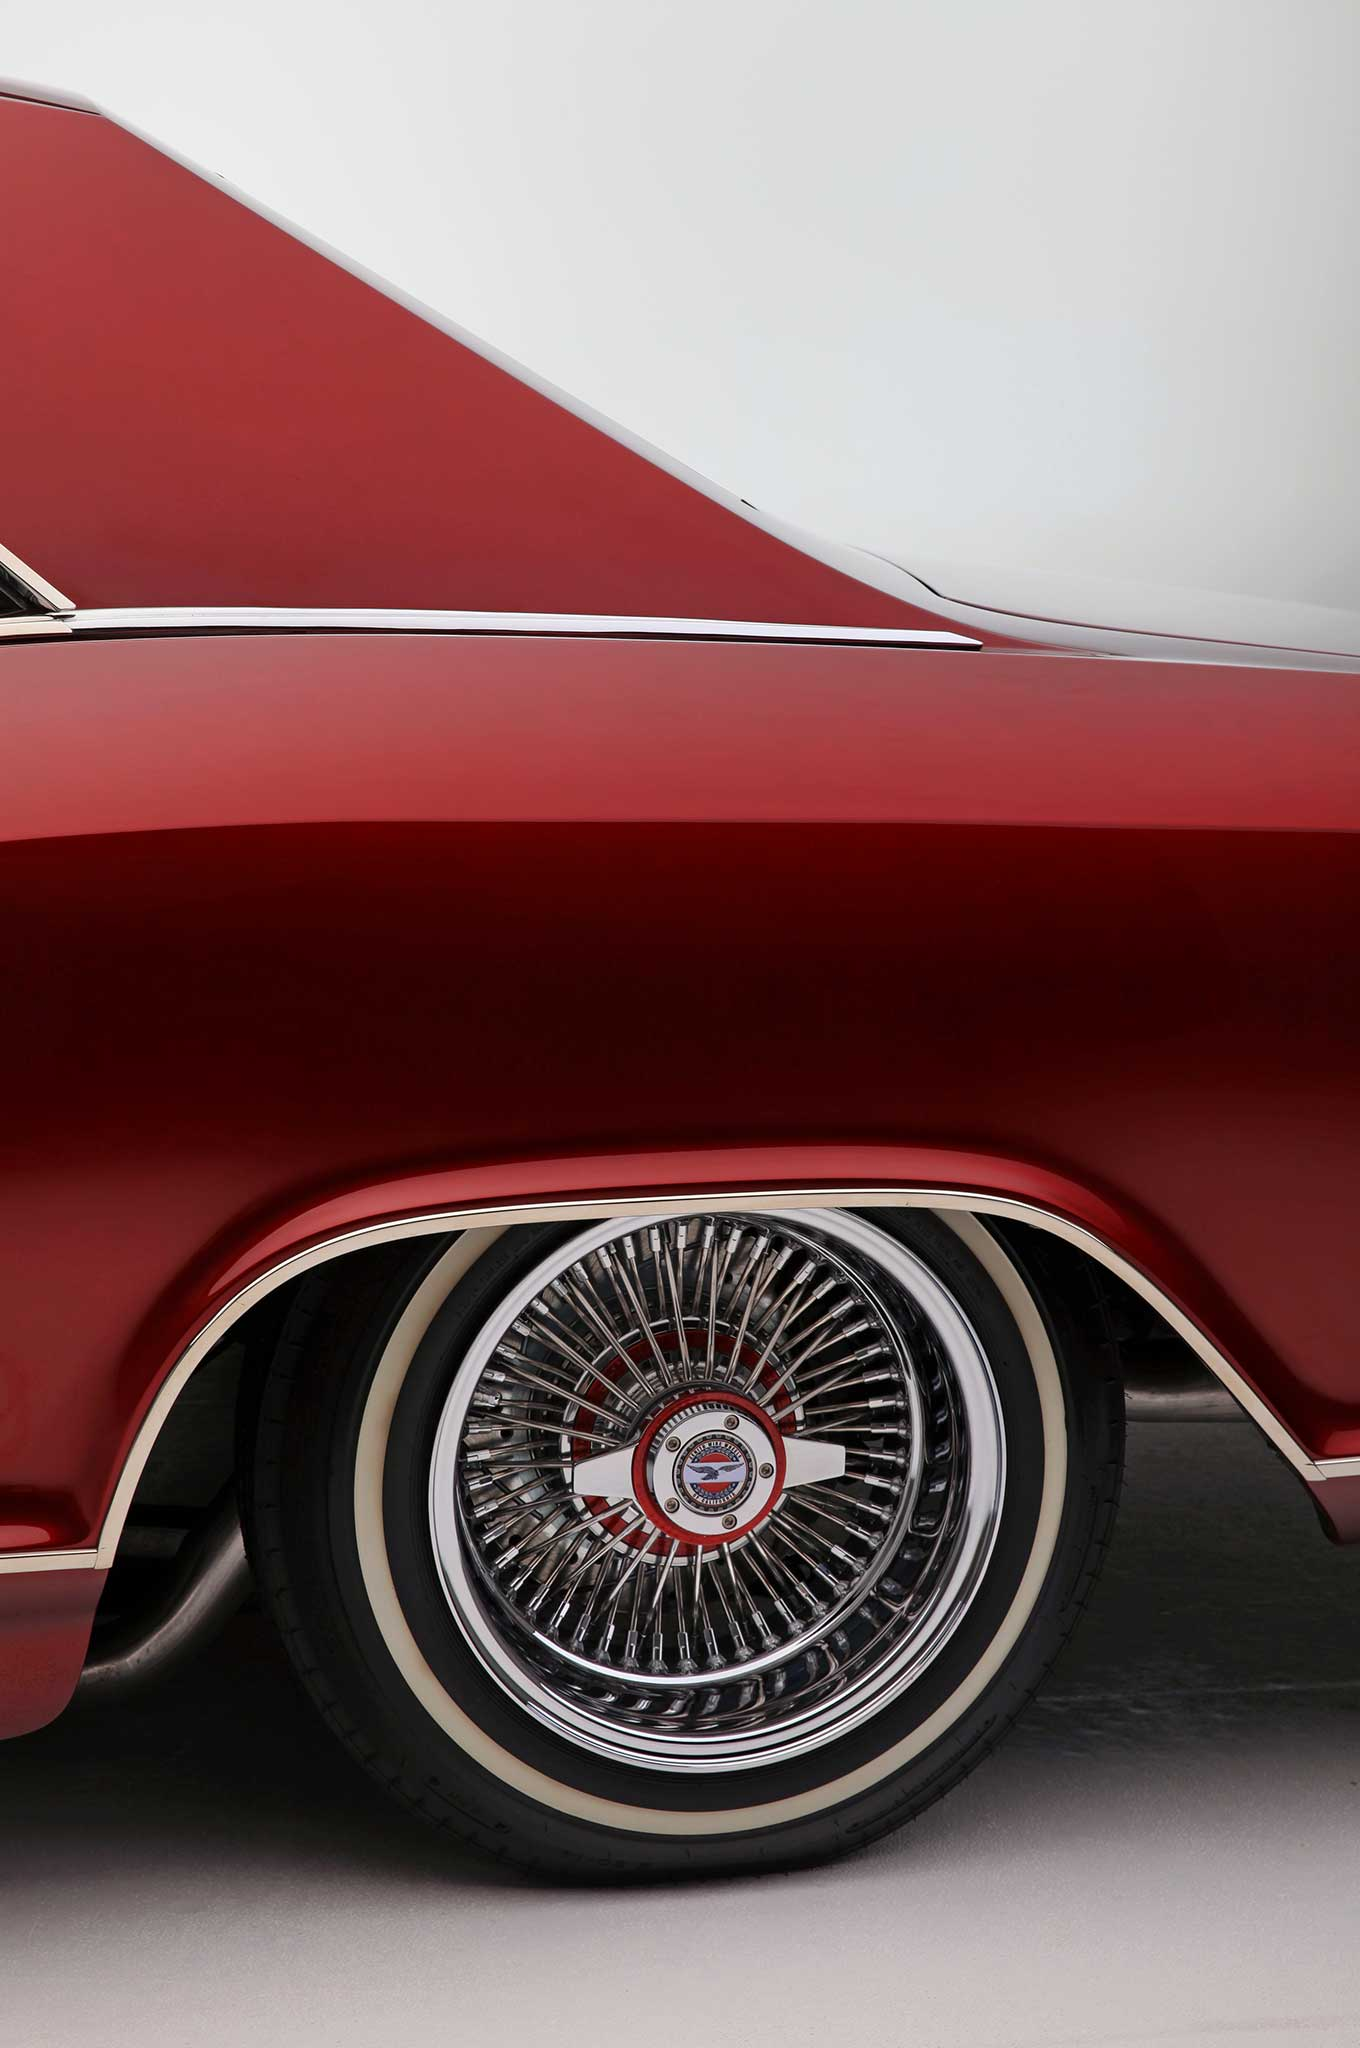 Top Notch Customs Builds a Clean '65 Buick Riviera